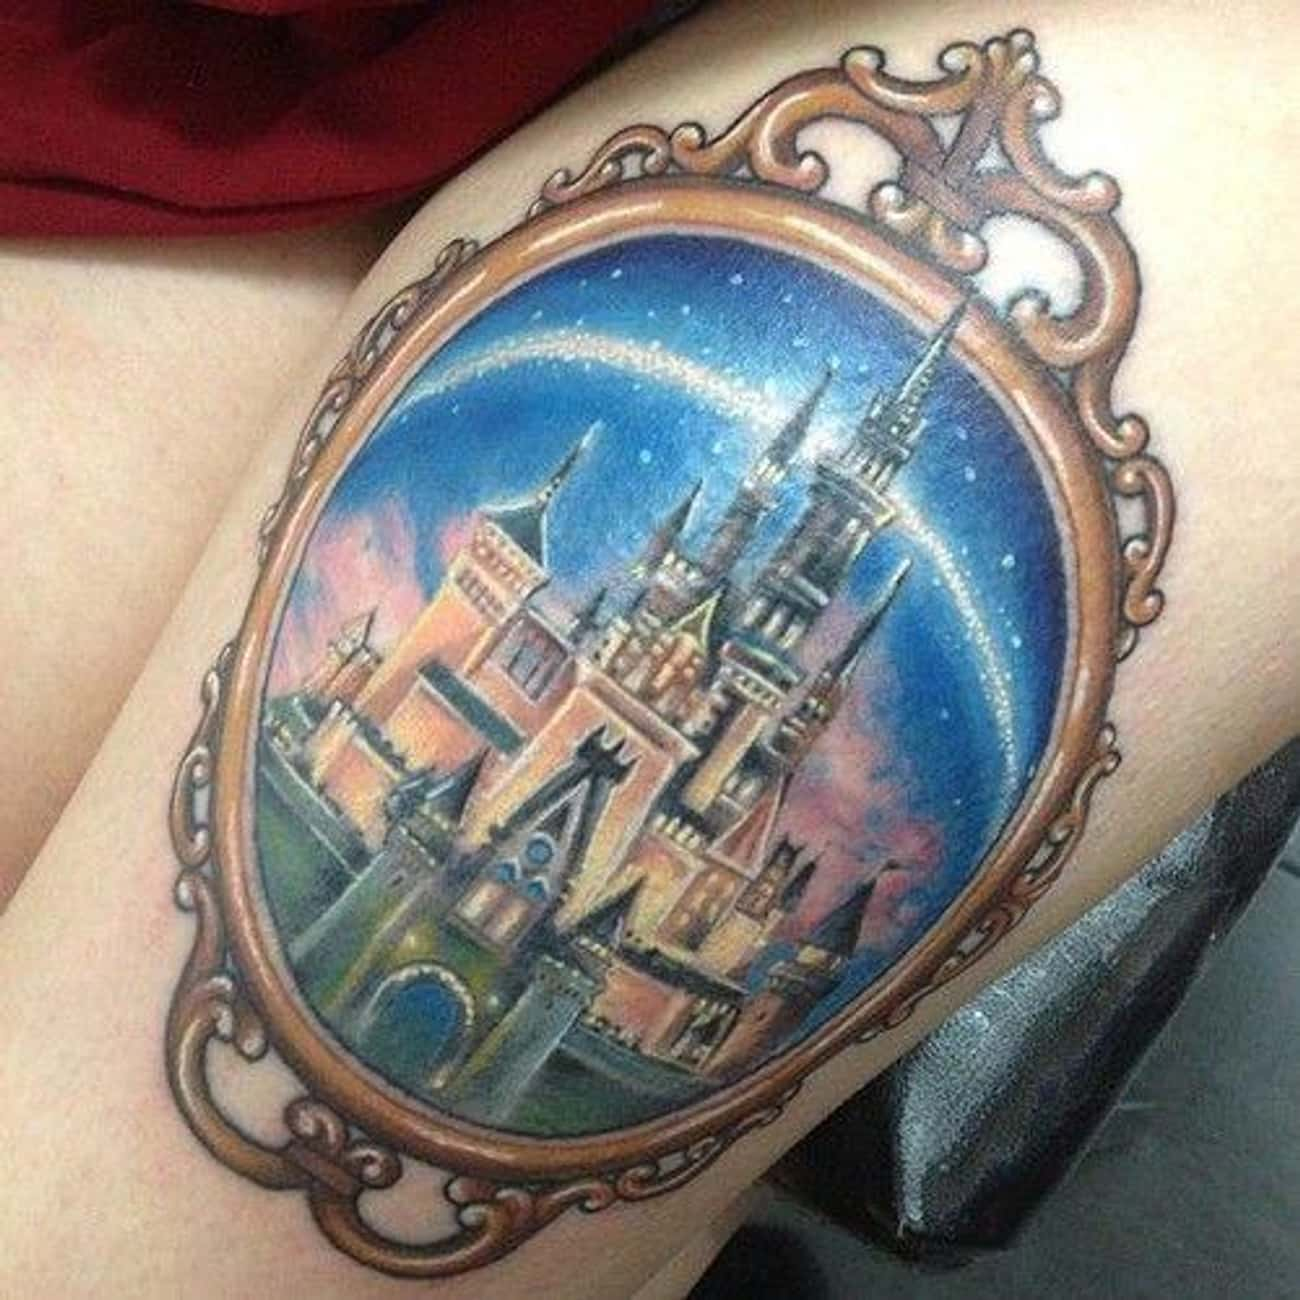 Sleeping Beauty's Castle Has N is listed (or ranked) 3 on the list The Coolest Disney Tattoos